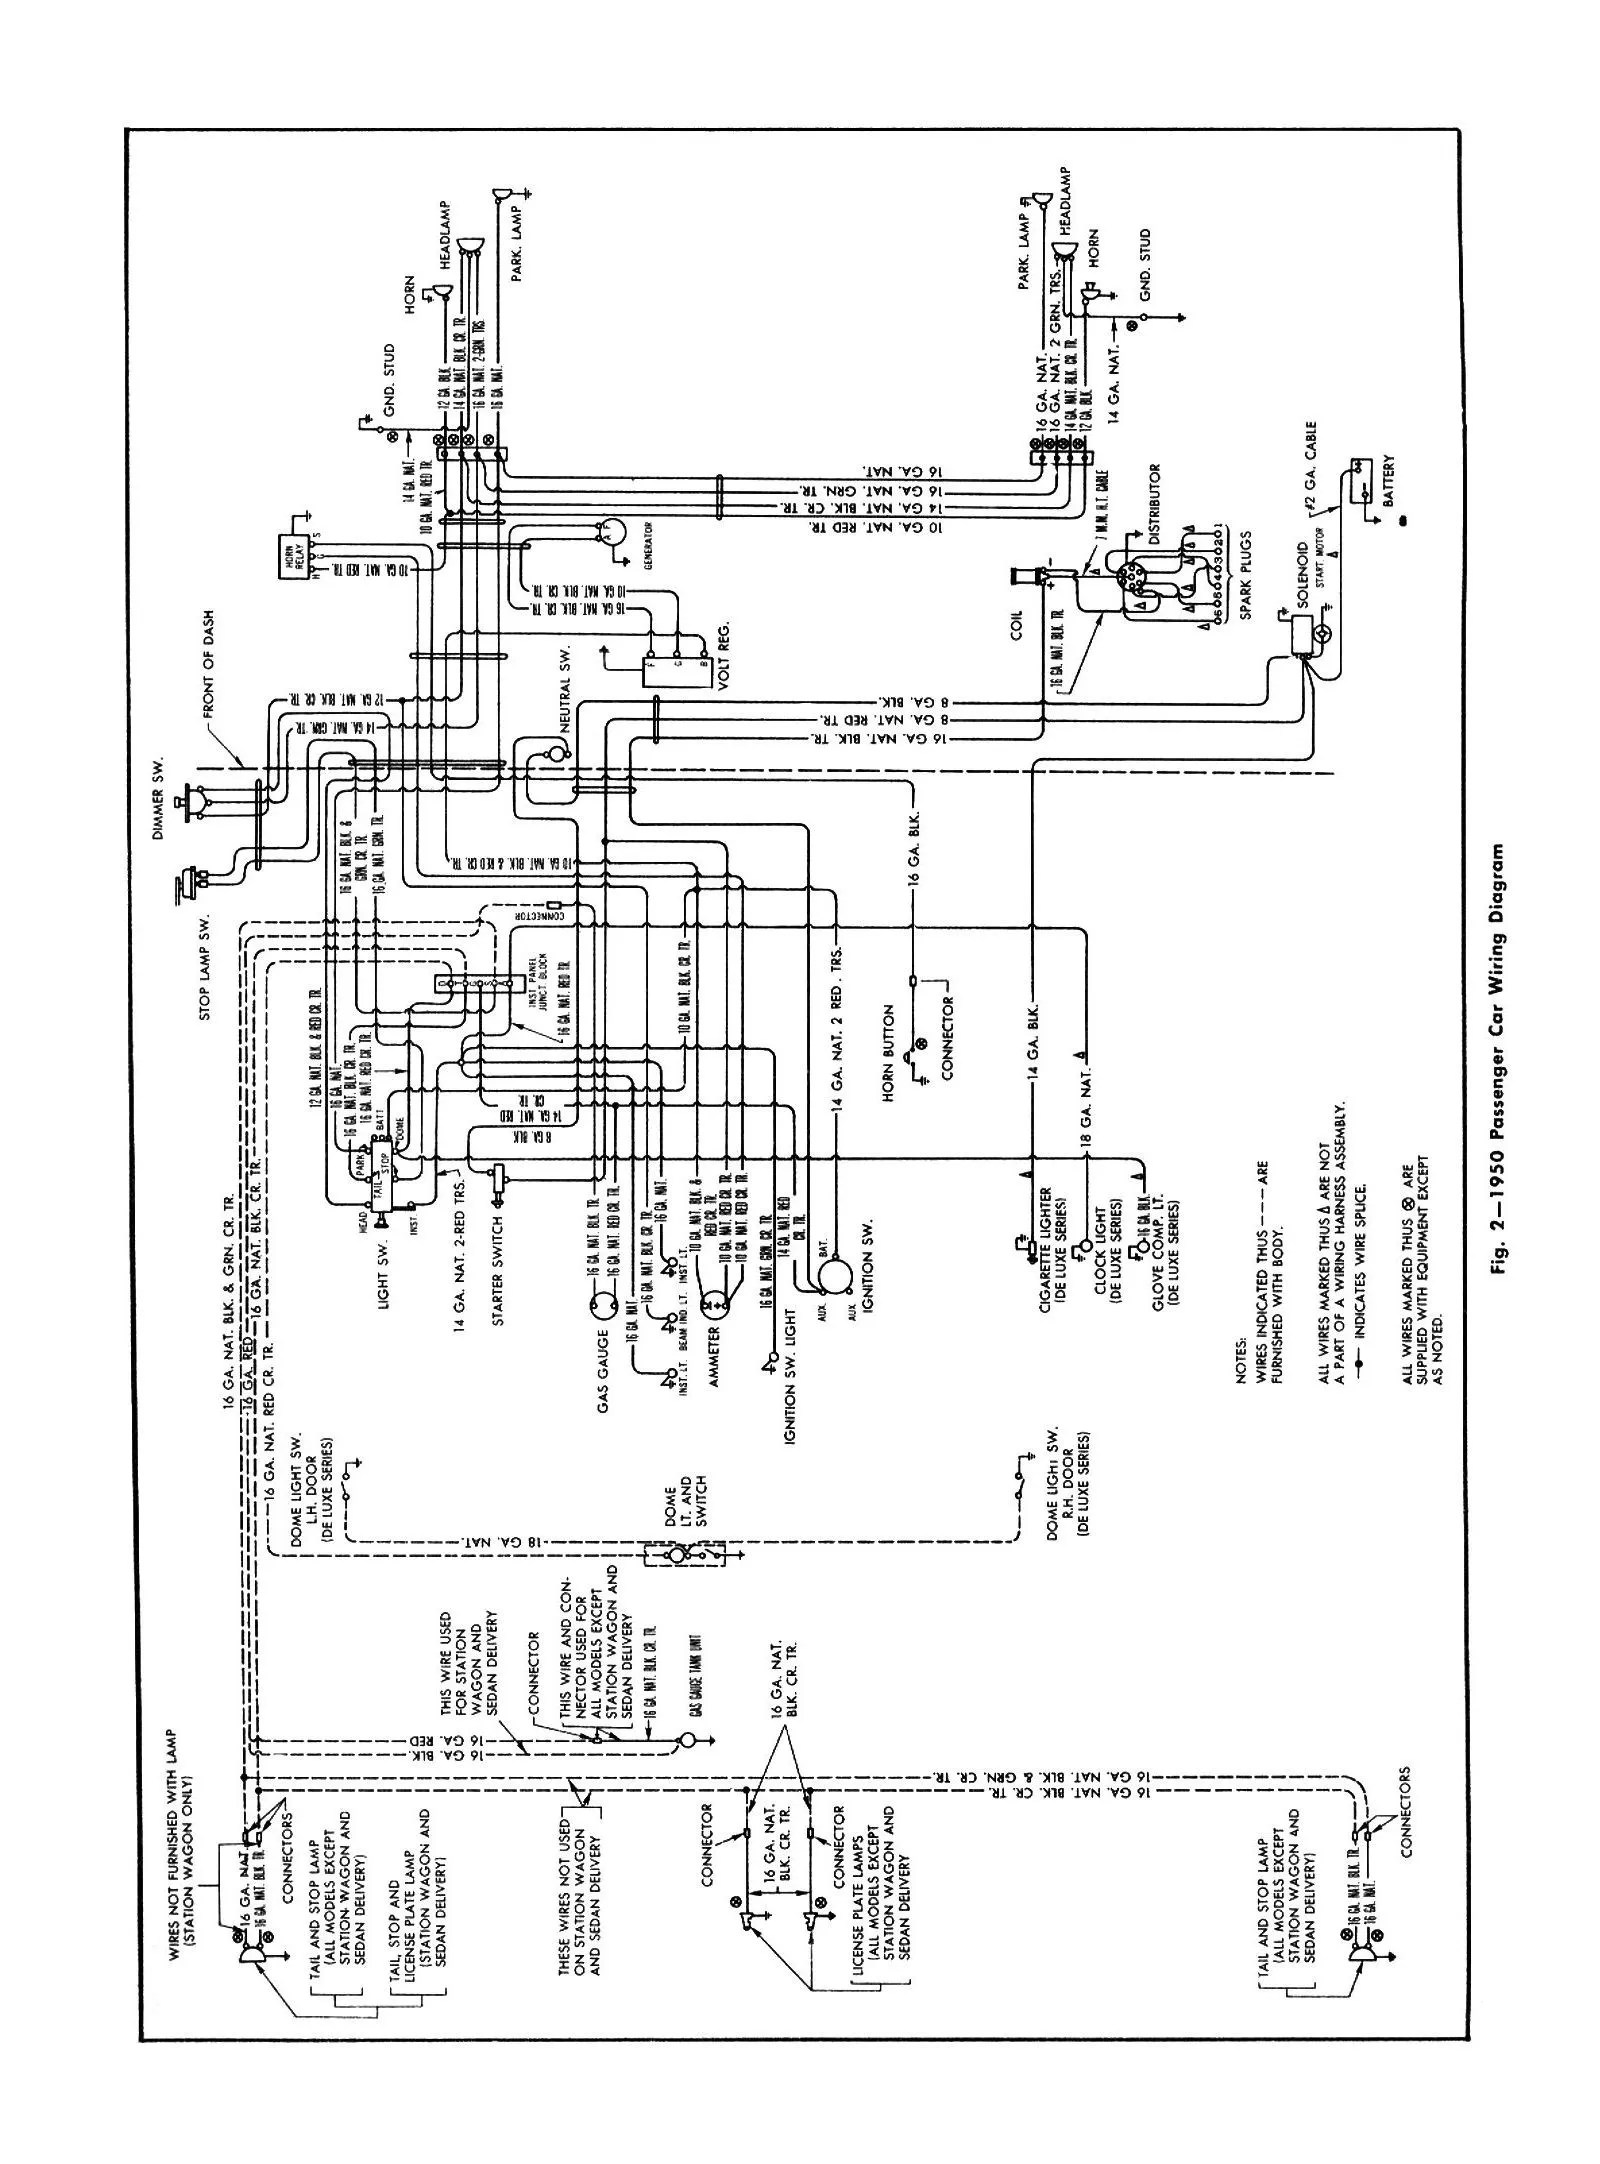 hight resolution of 1951 chevy truck wiring harness diagram free download wiring 1949 chevy wiring harness sleeve wiring diagrams